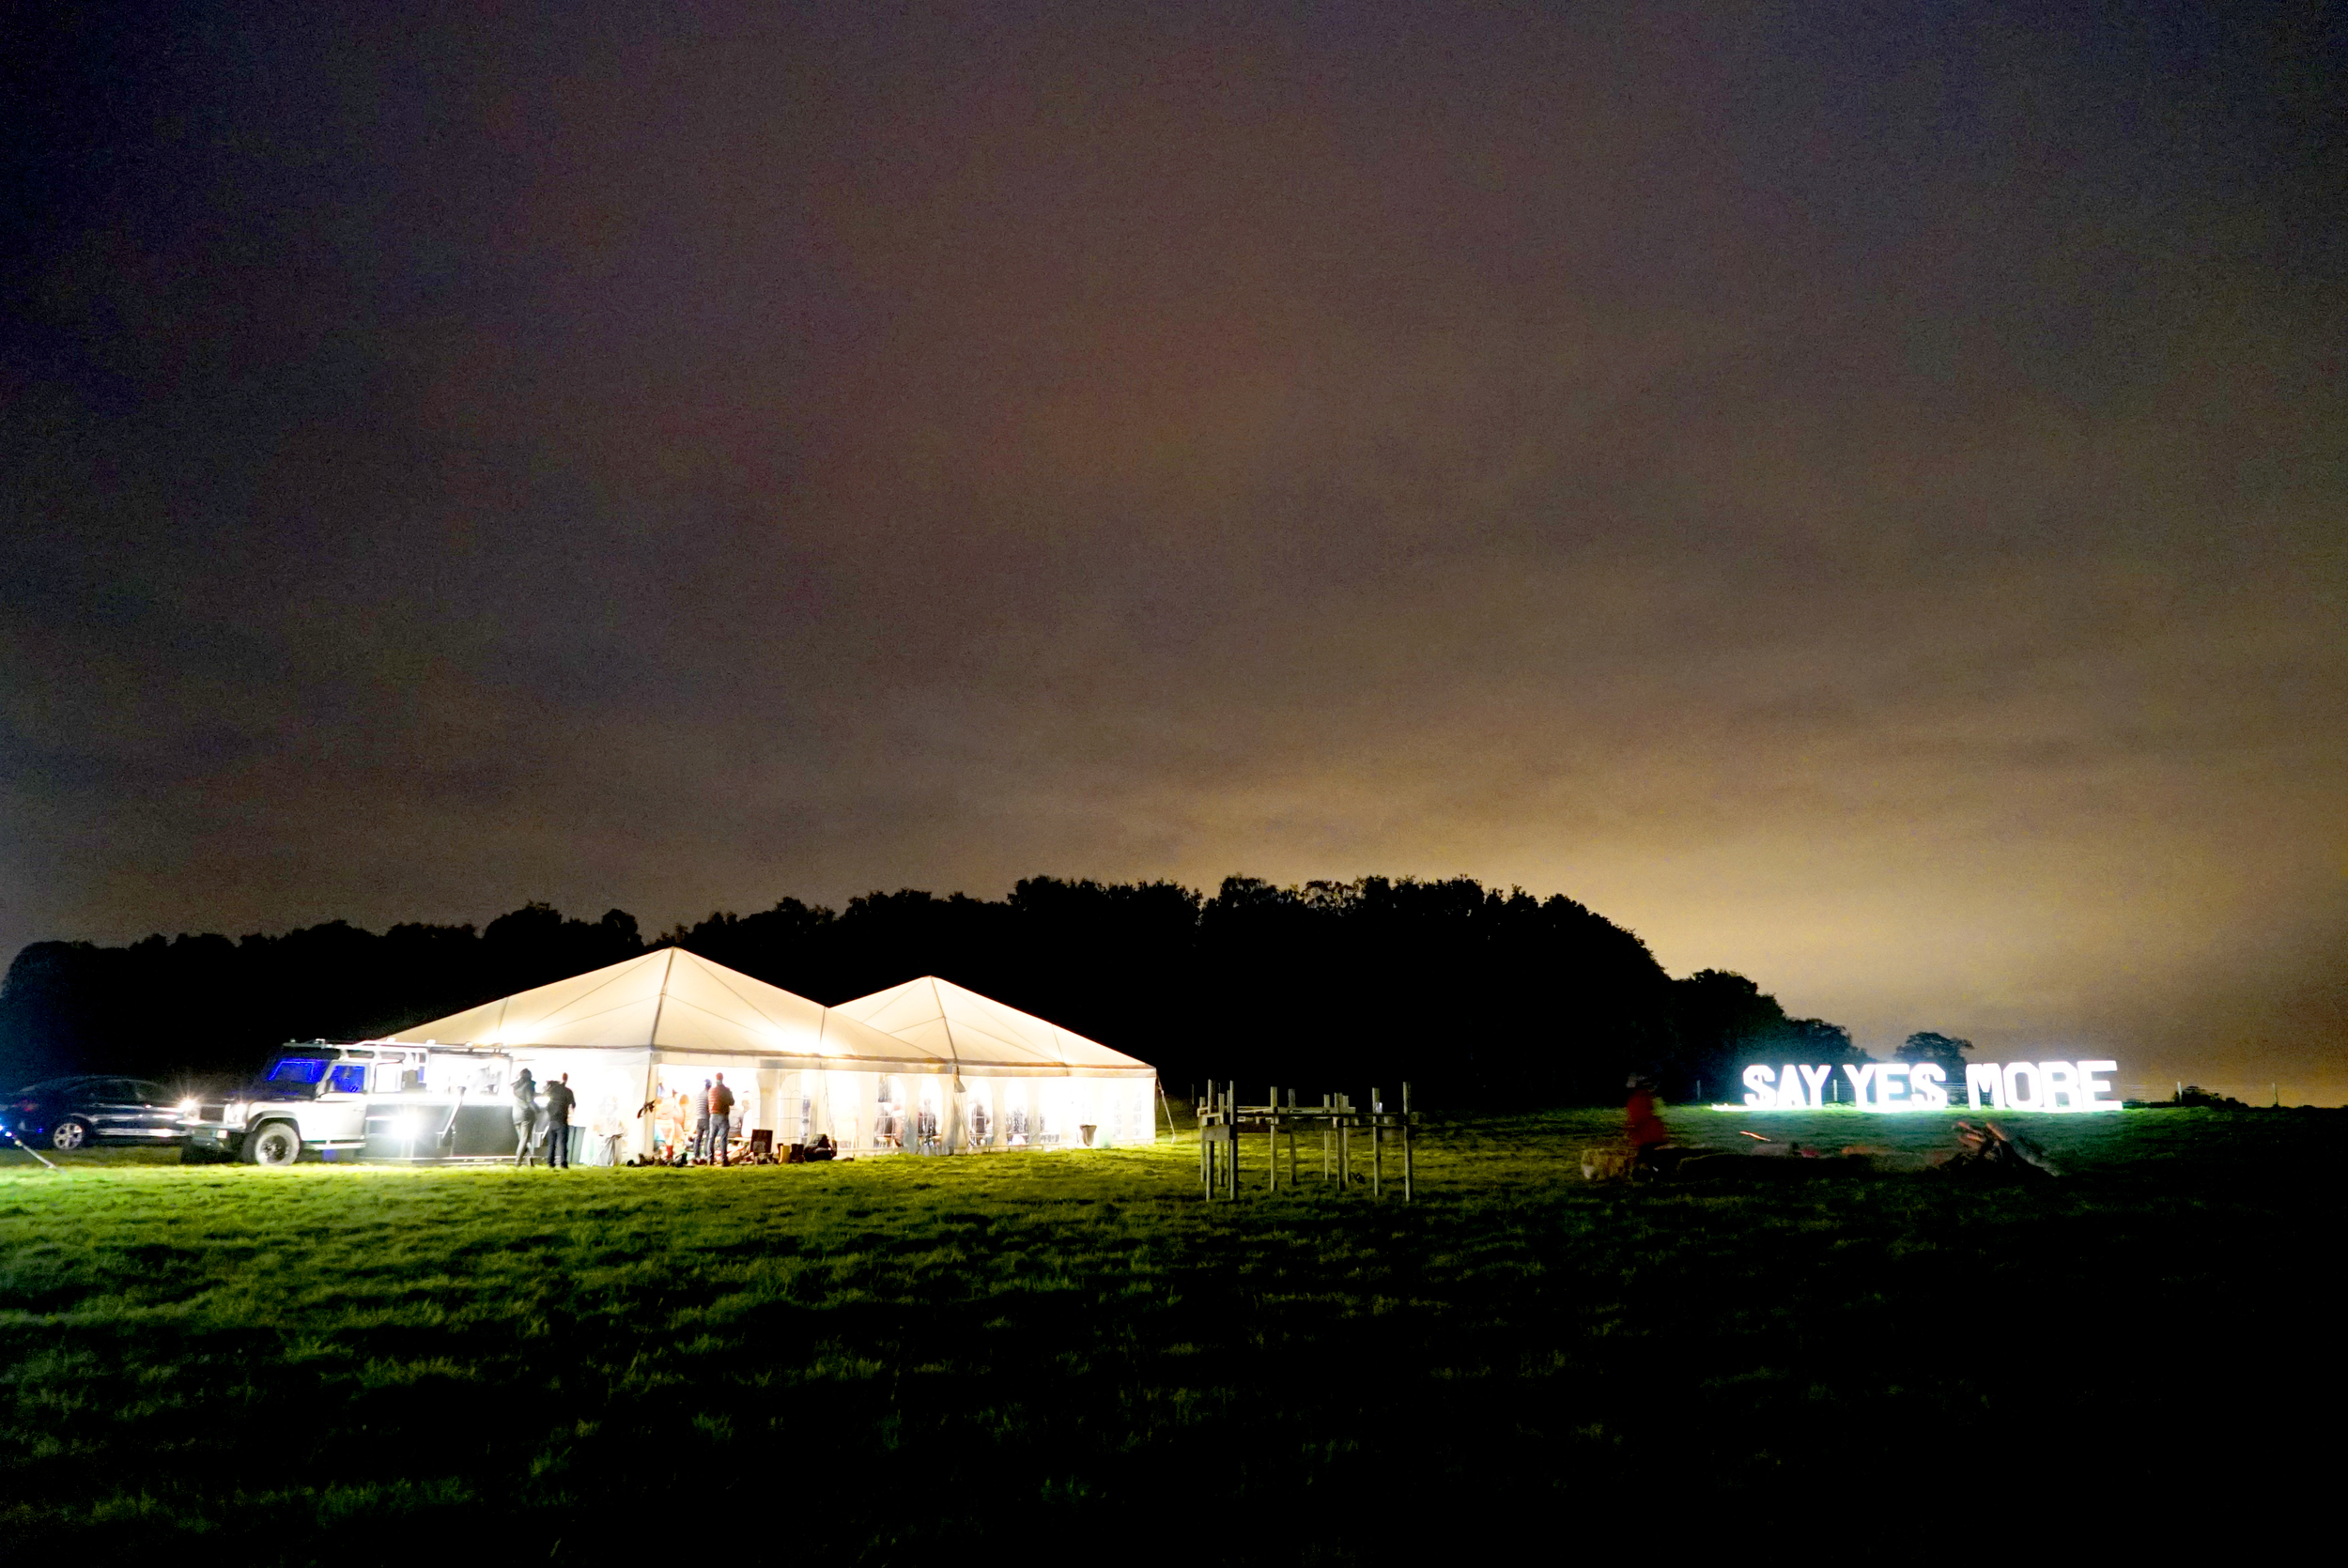 Yestival 2017 is held on the 20-22 October weekend in a field of dreams in Sussex.  Join us!